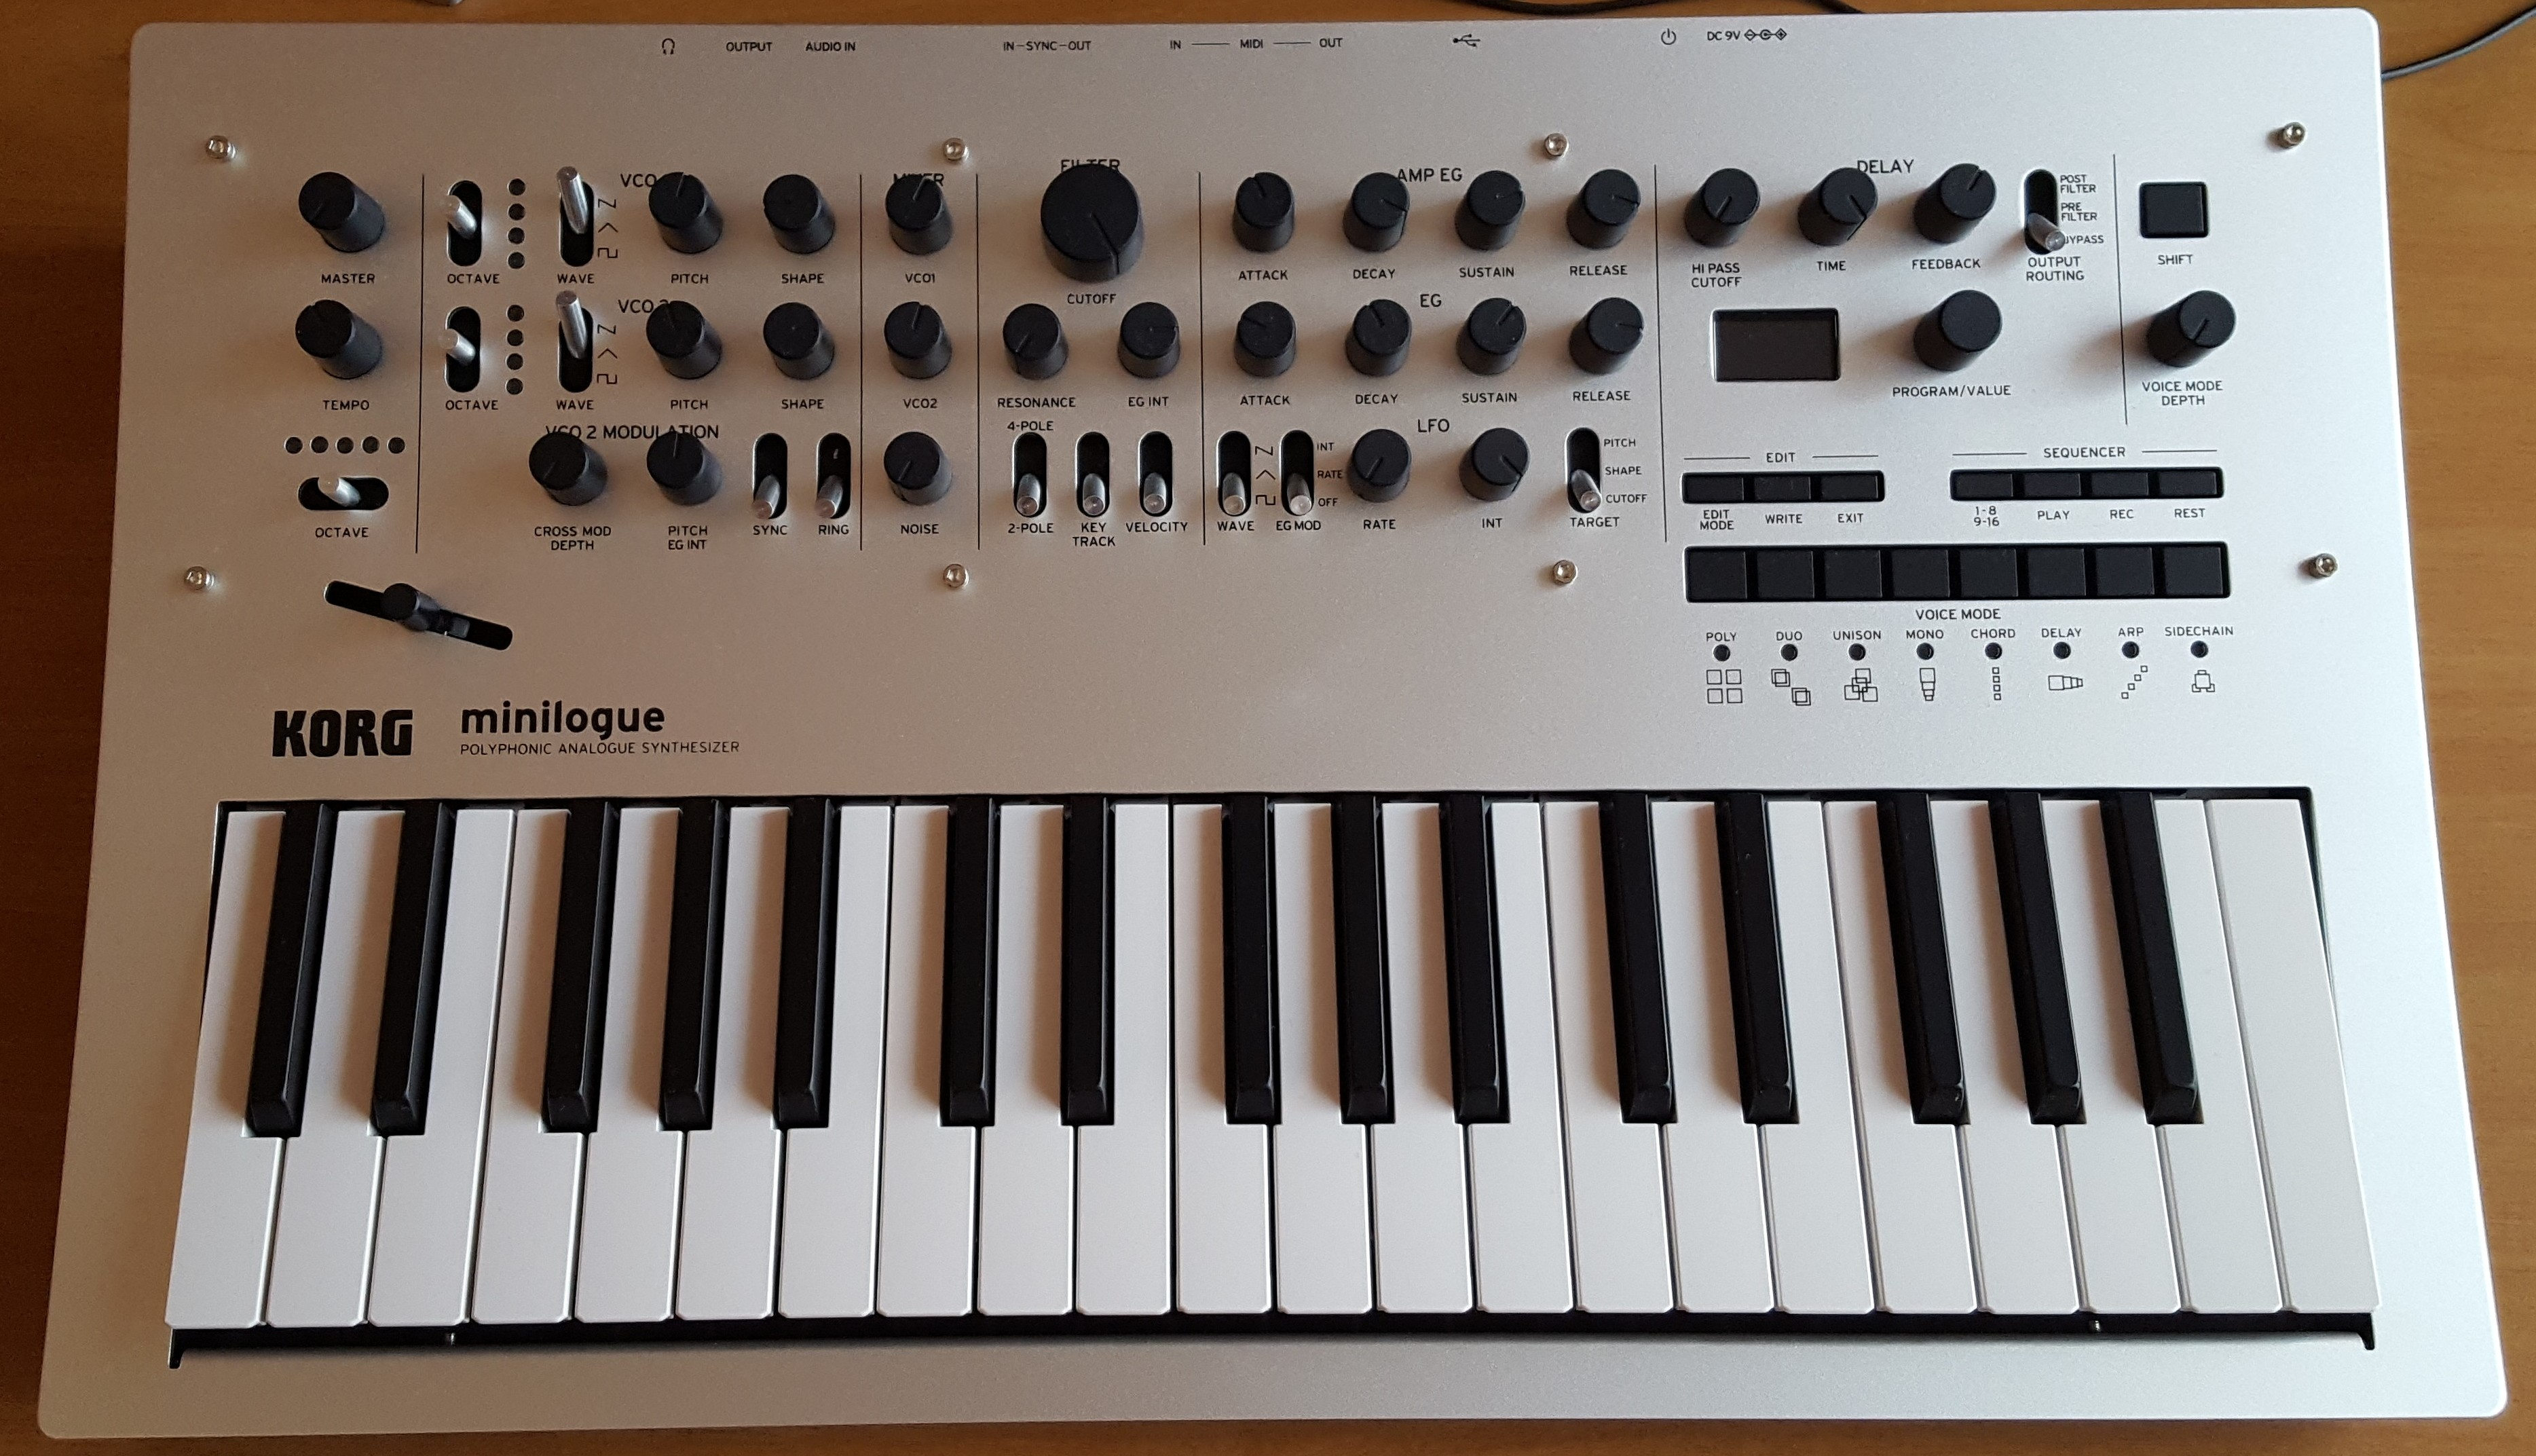 Korg Minilogue - Wikipedia